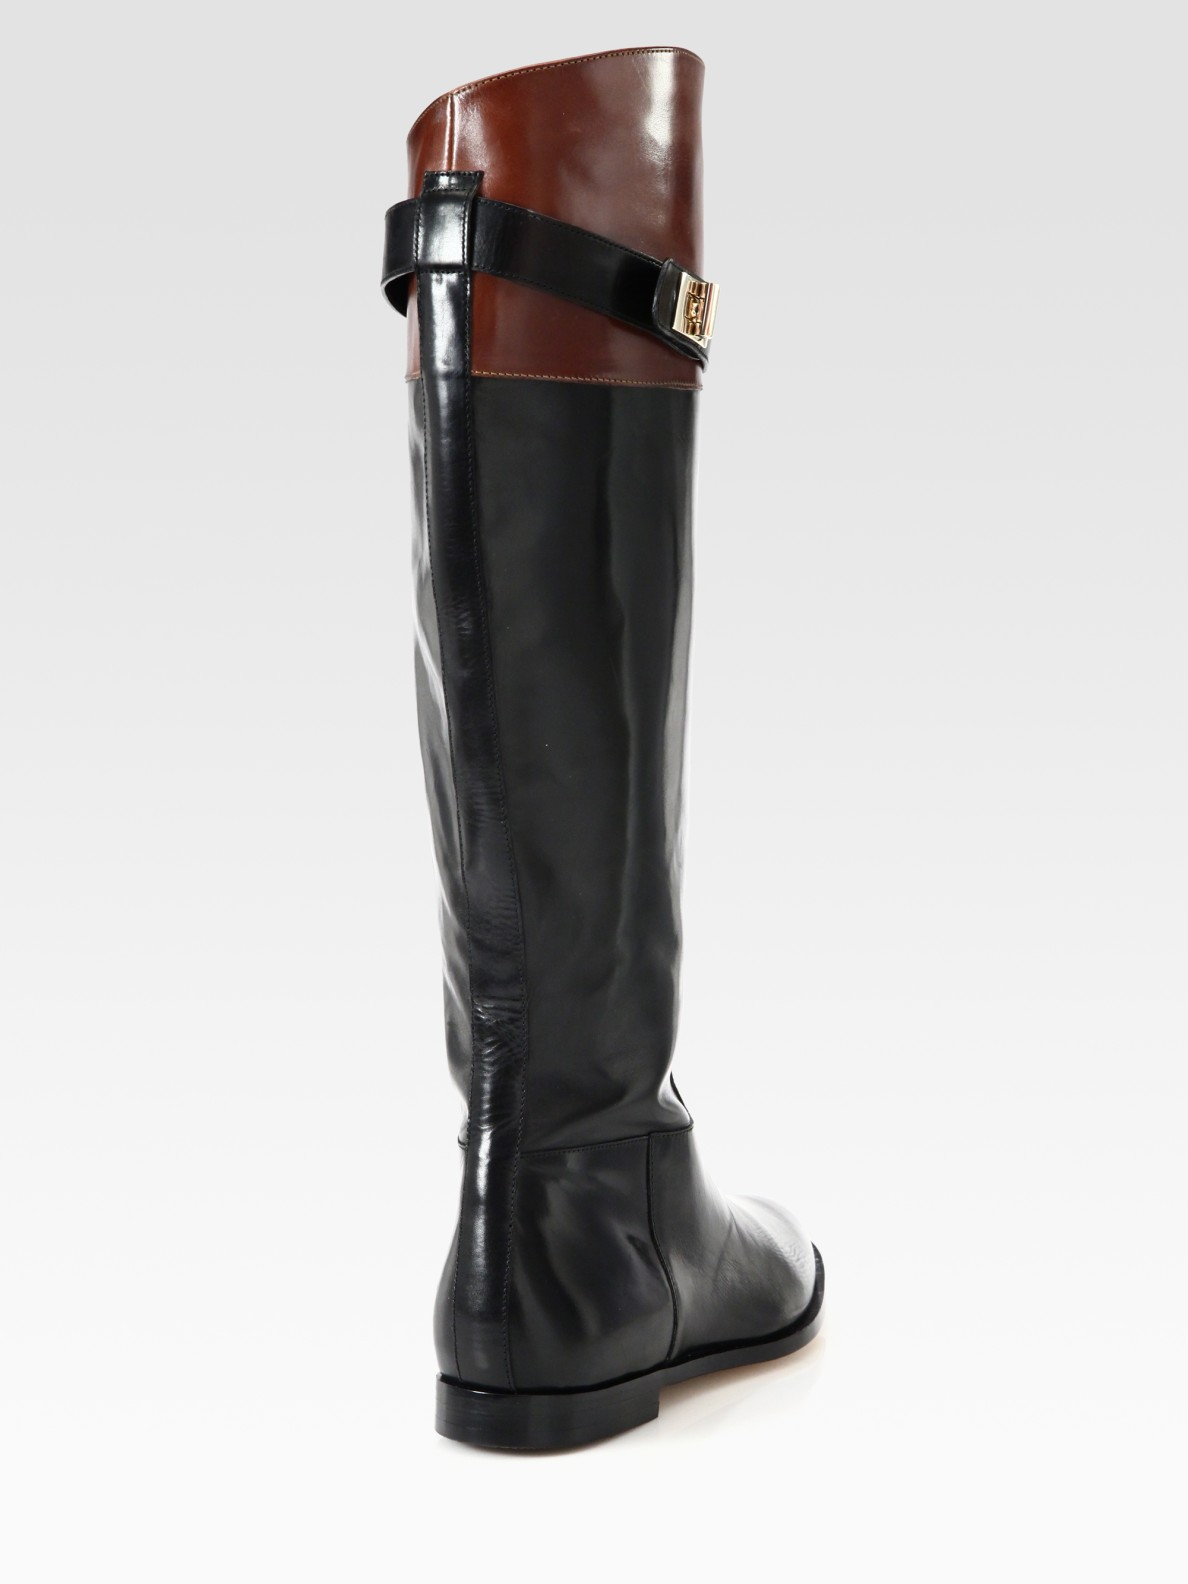 Cole haan Twotone Leather Riding Boots in Black | Lyst